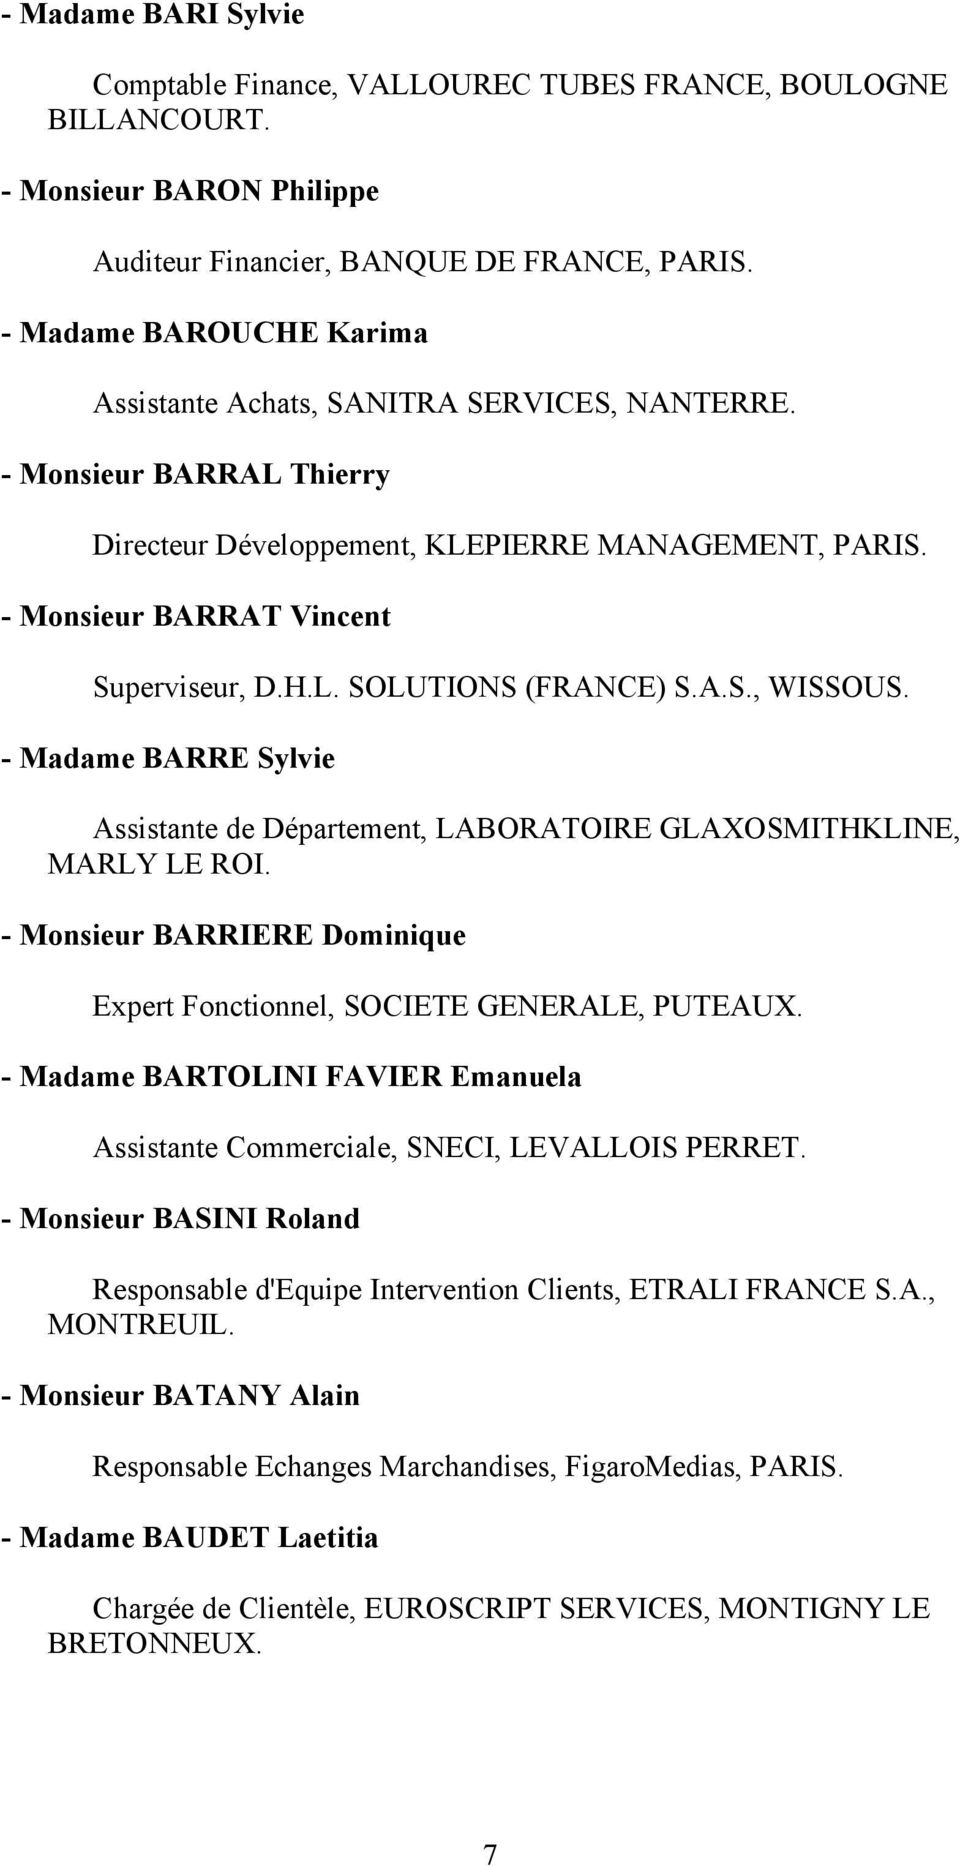 A.S., WISSOUS. - Madame BARRE Sylvie Assistante de Département, LABORATOIRE GLAXOSMITHKLINE, MARLY LE ROI. - Monsieur BARRIERE Dominique Expert Fonctionnel, SOCIETE GENERALE, PUTEAUX.